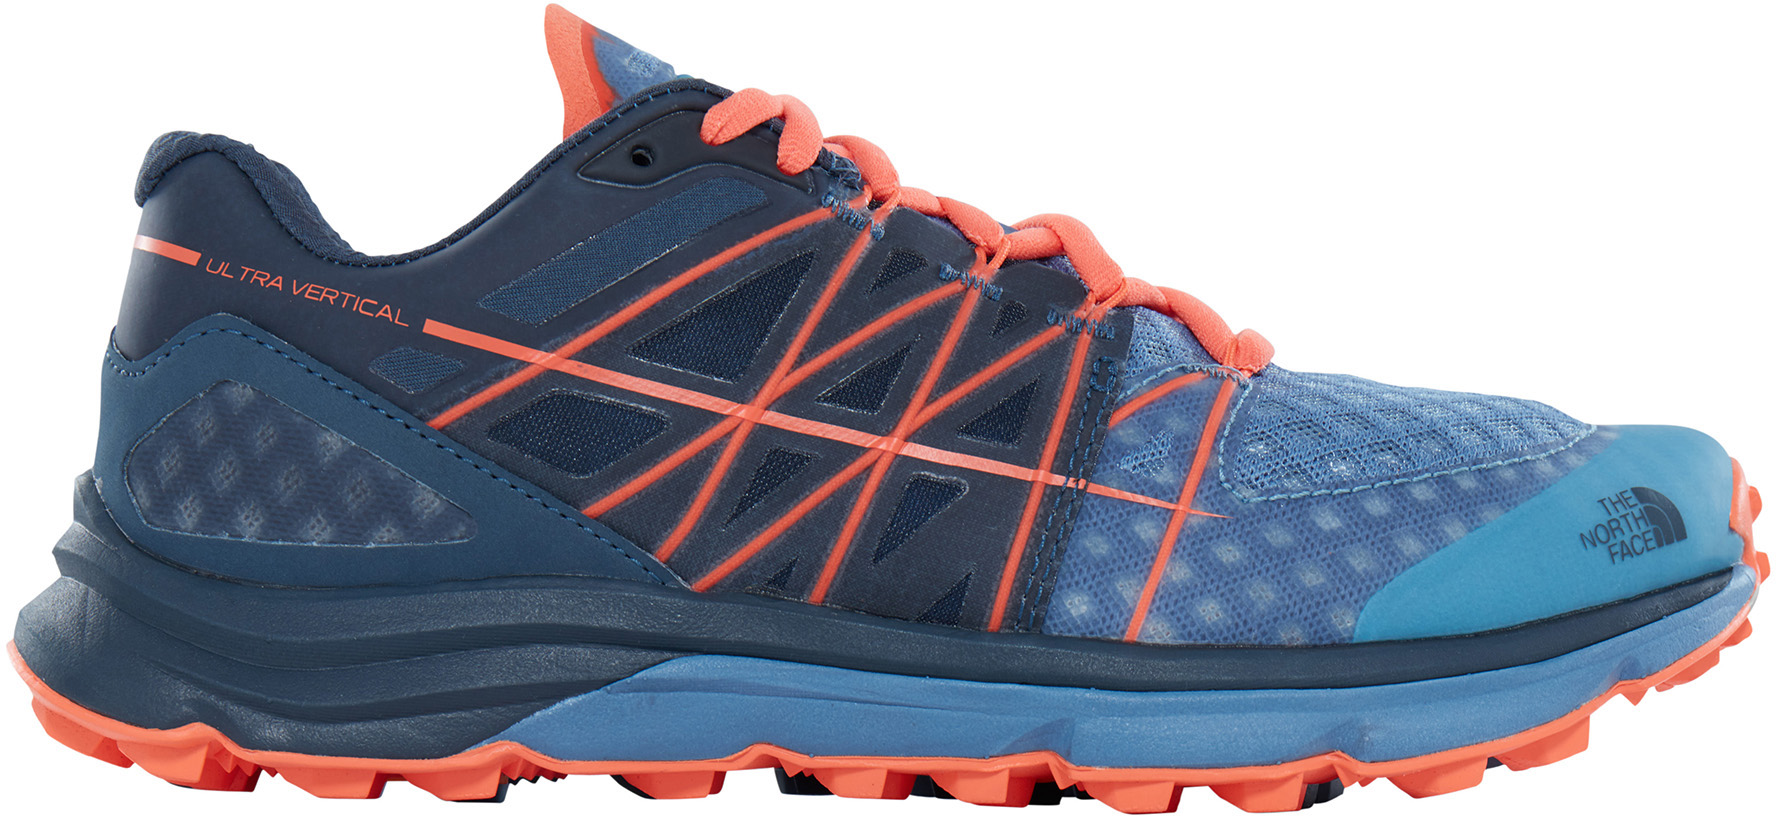 north face ultra vertical